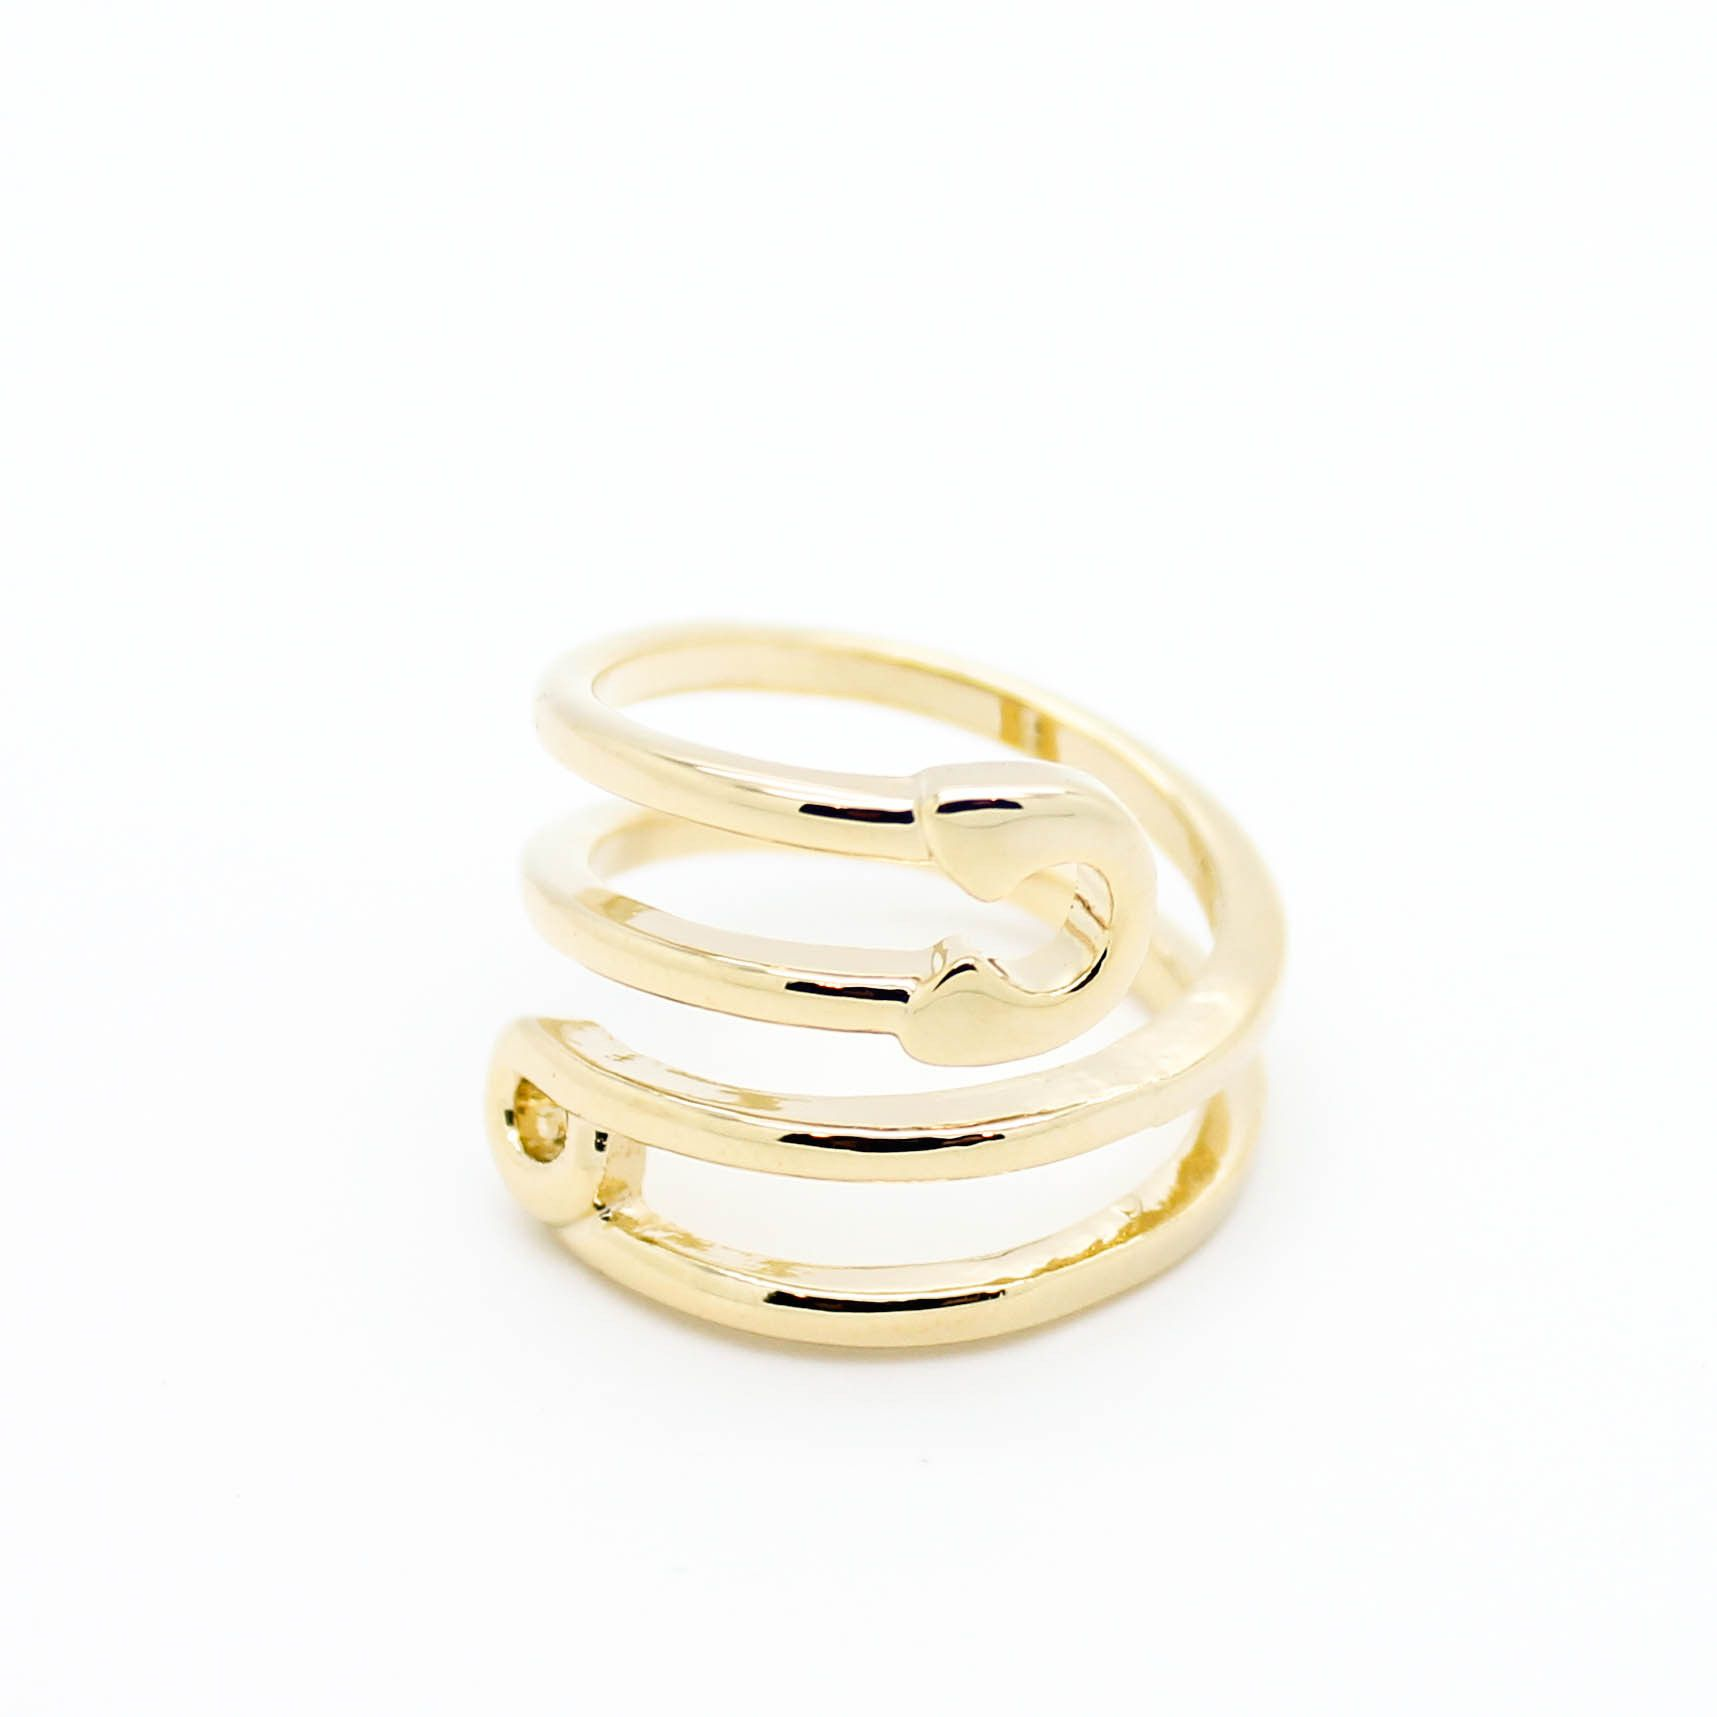 Safety pin coil ring